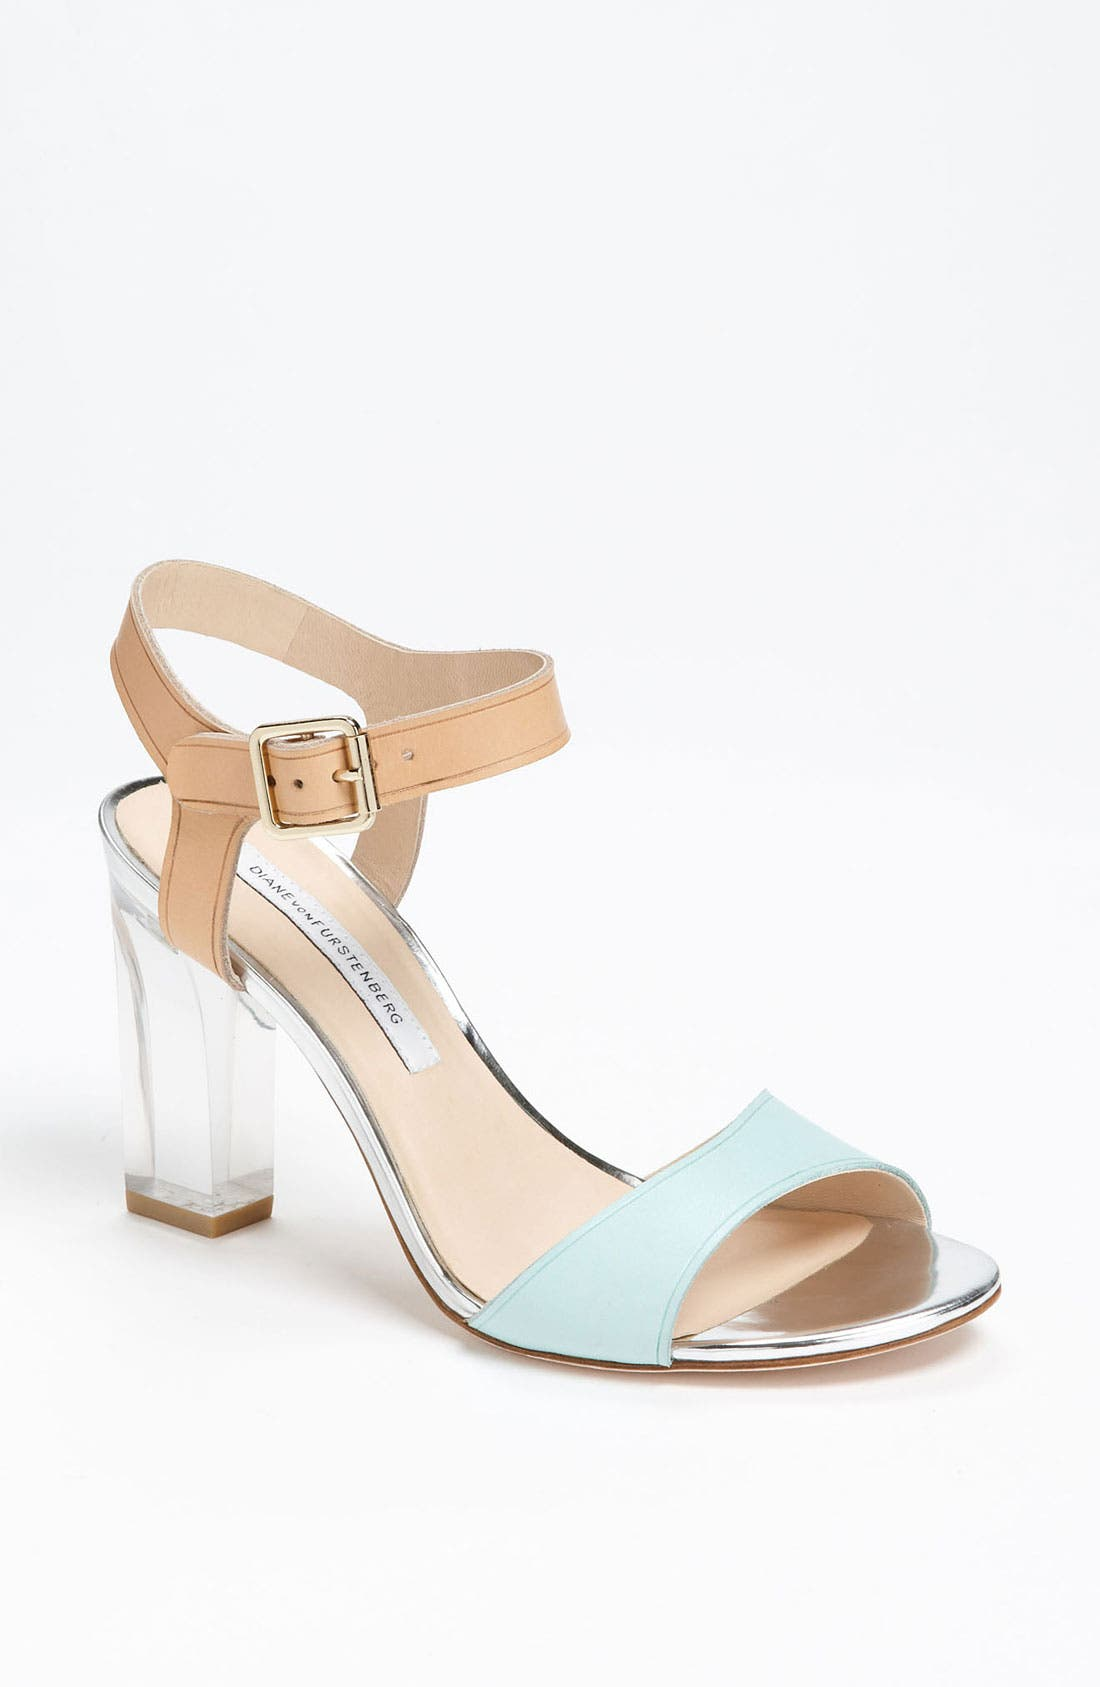 Alternate Image 1 Selected - Diane von Furstenberg 'Patmos' Sandal (Online Only)